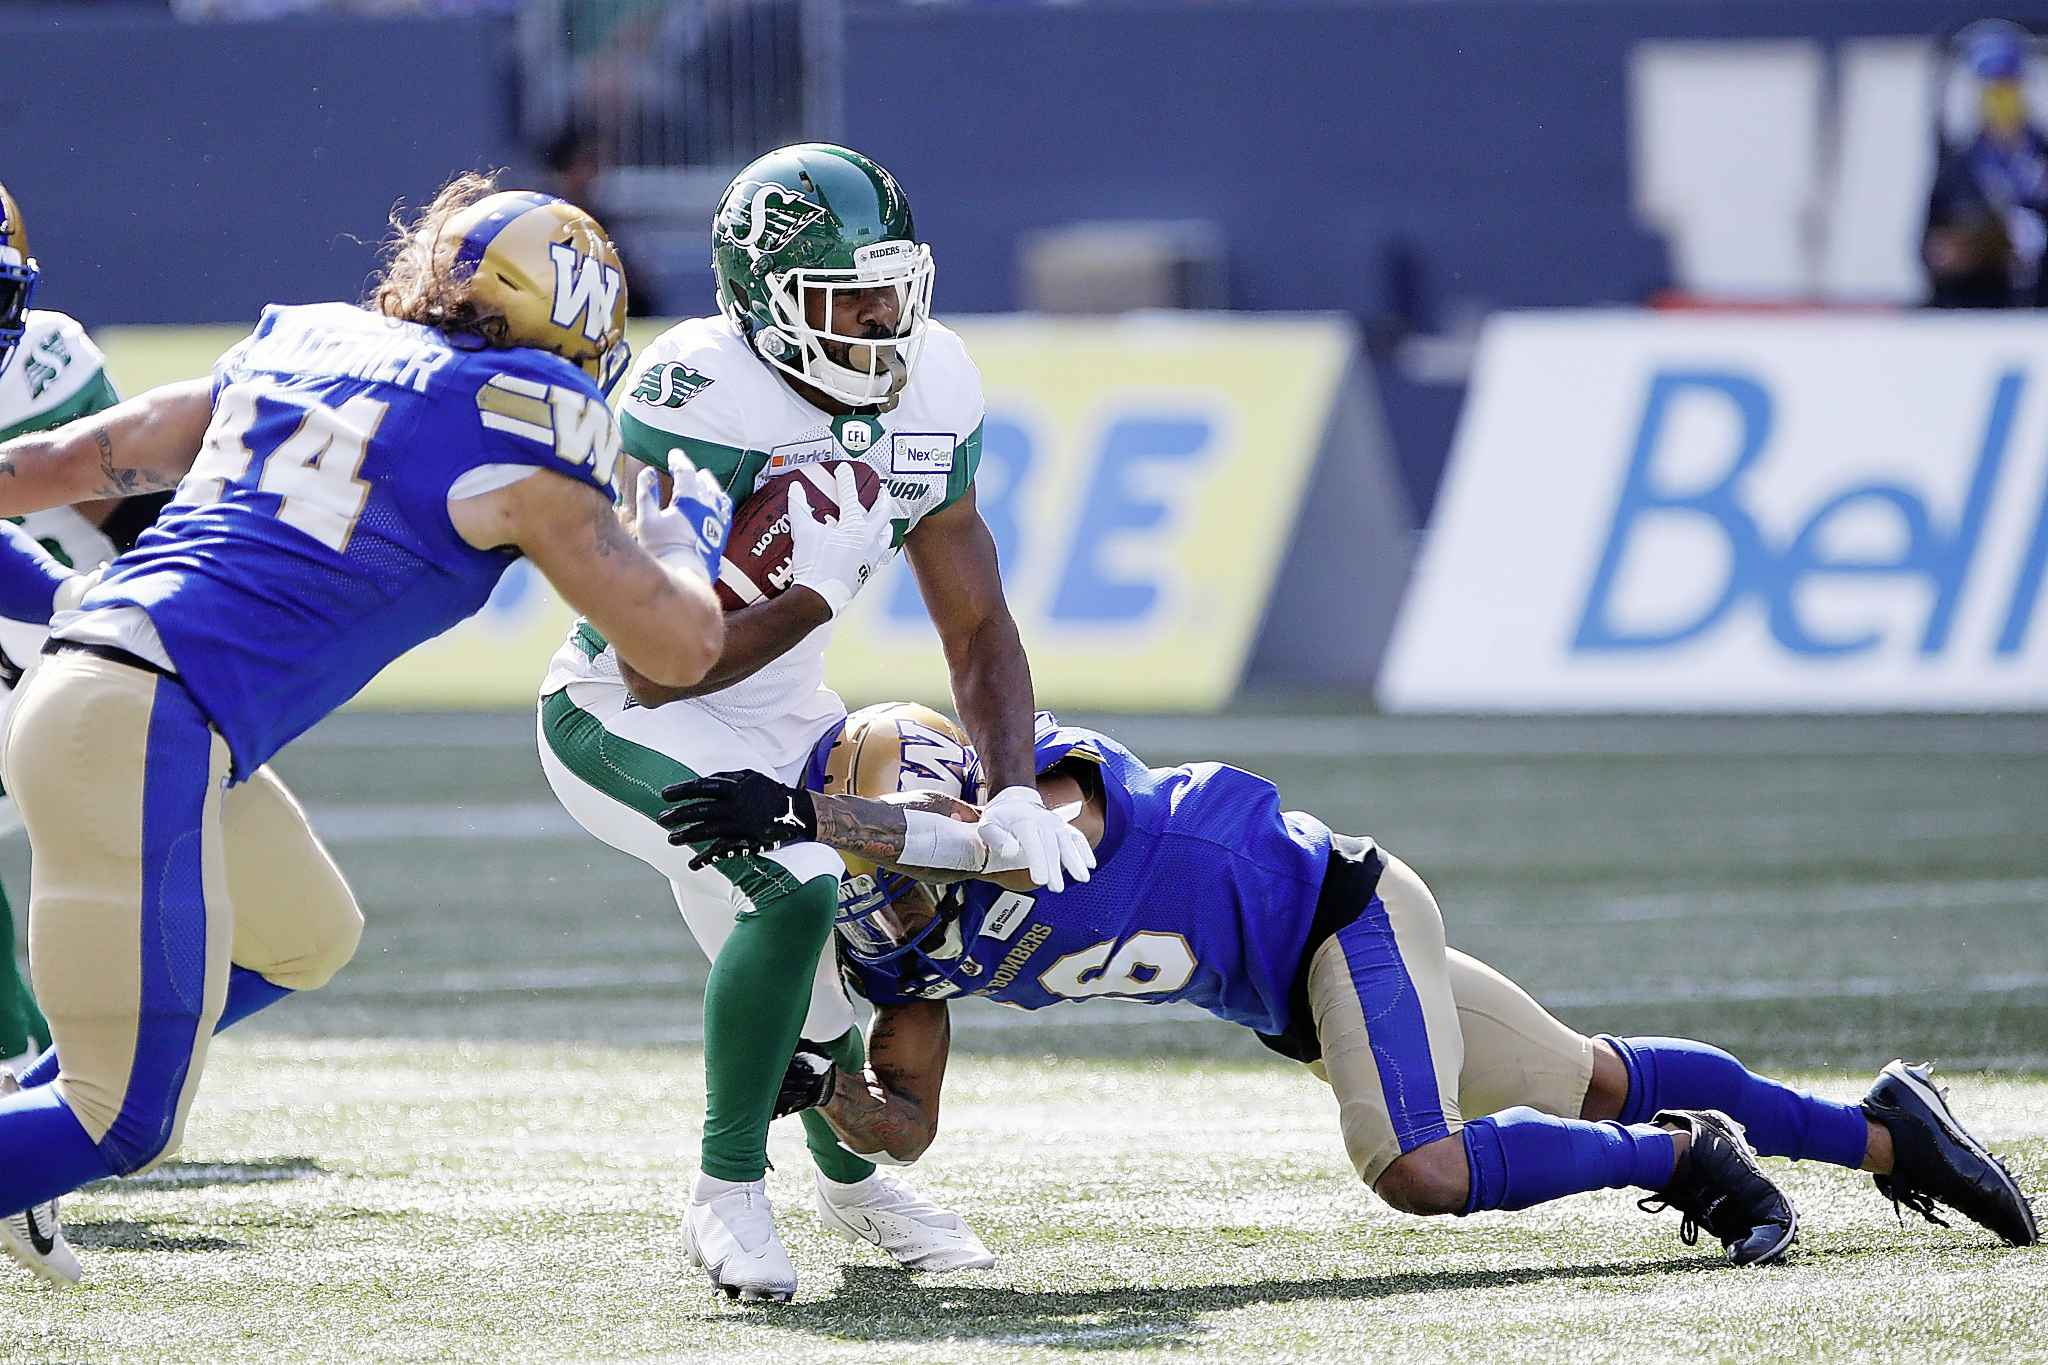 Winnipeg Blue Bombers' Mike Jones (16) tackled Saskatchewan Roughriders' William Powell (29) during the first half. (John Woods / The Canadian Press files)